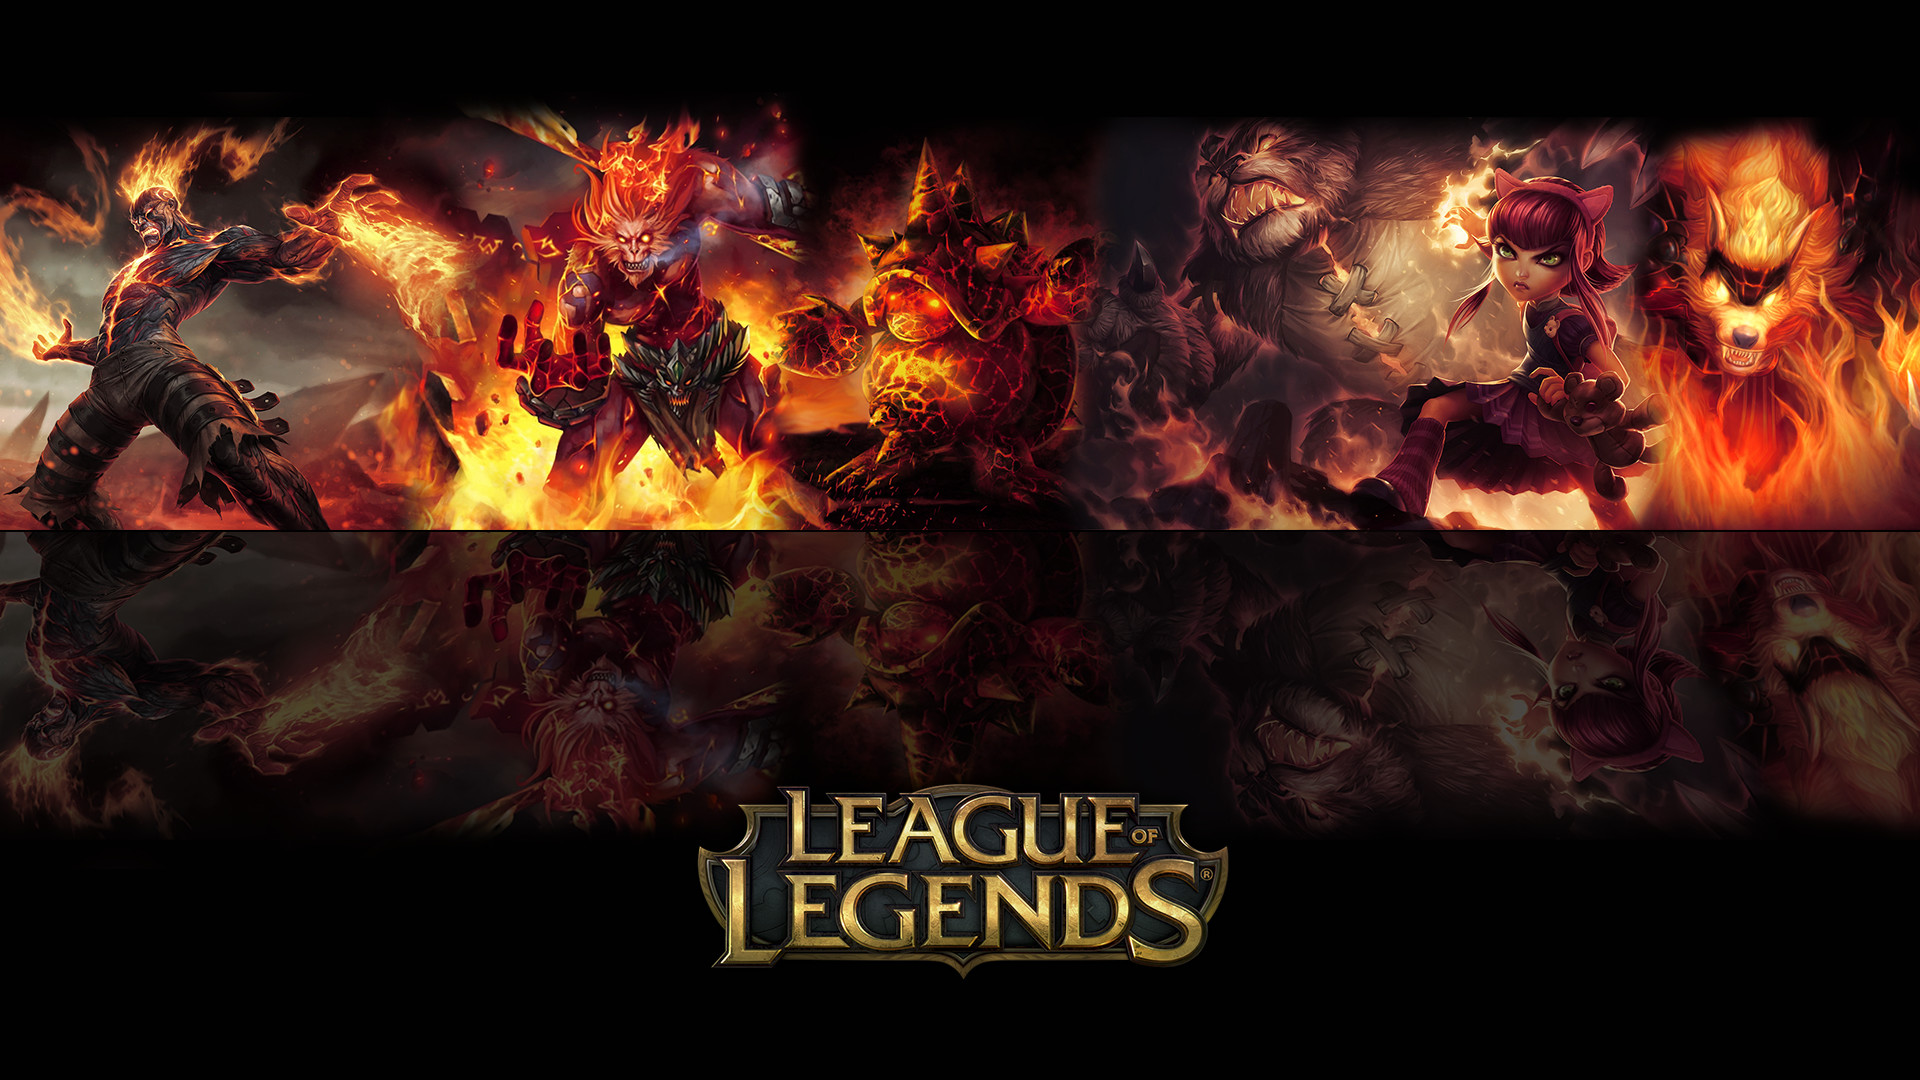 … League of legends Fire Wallpaper by ViciousBlue